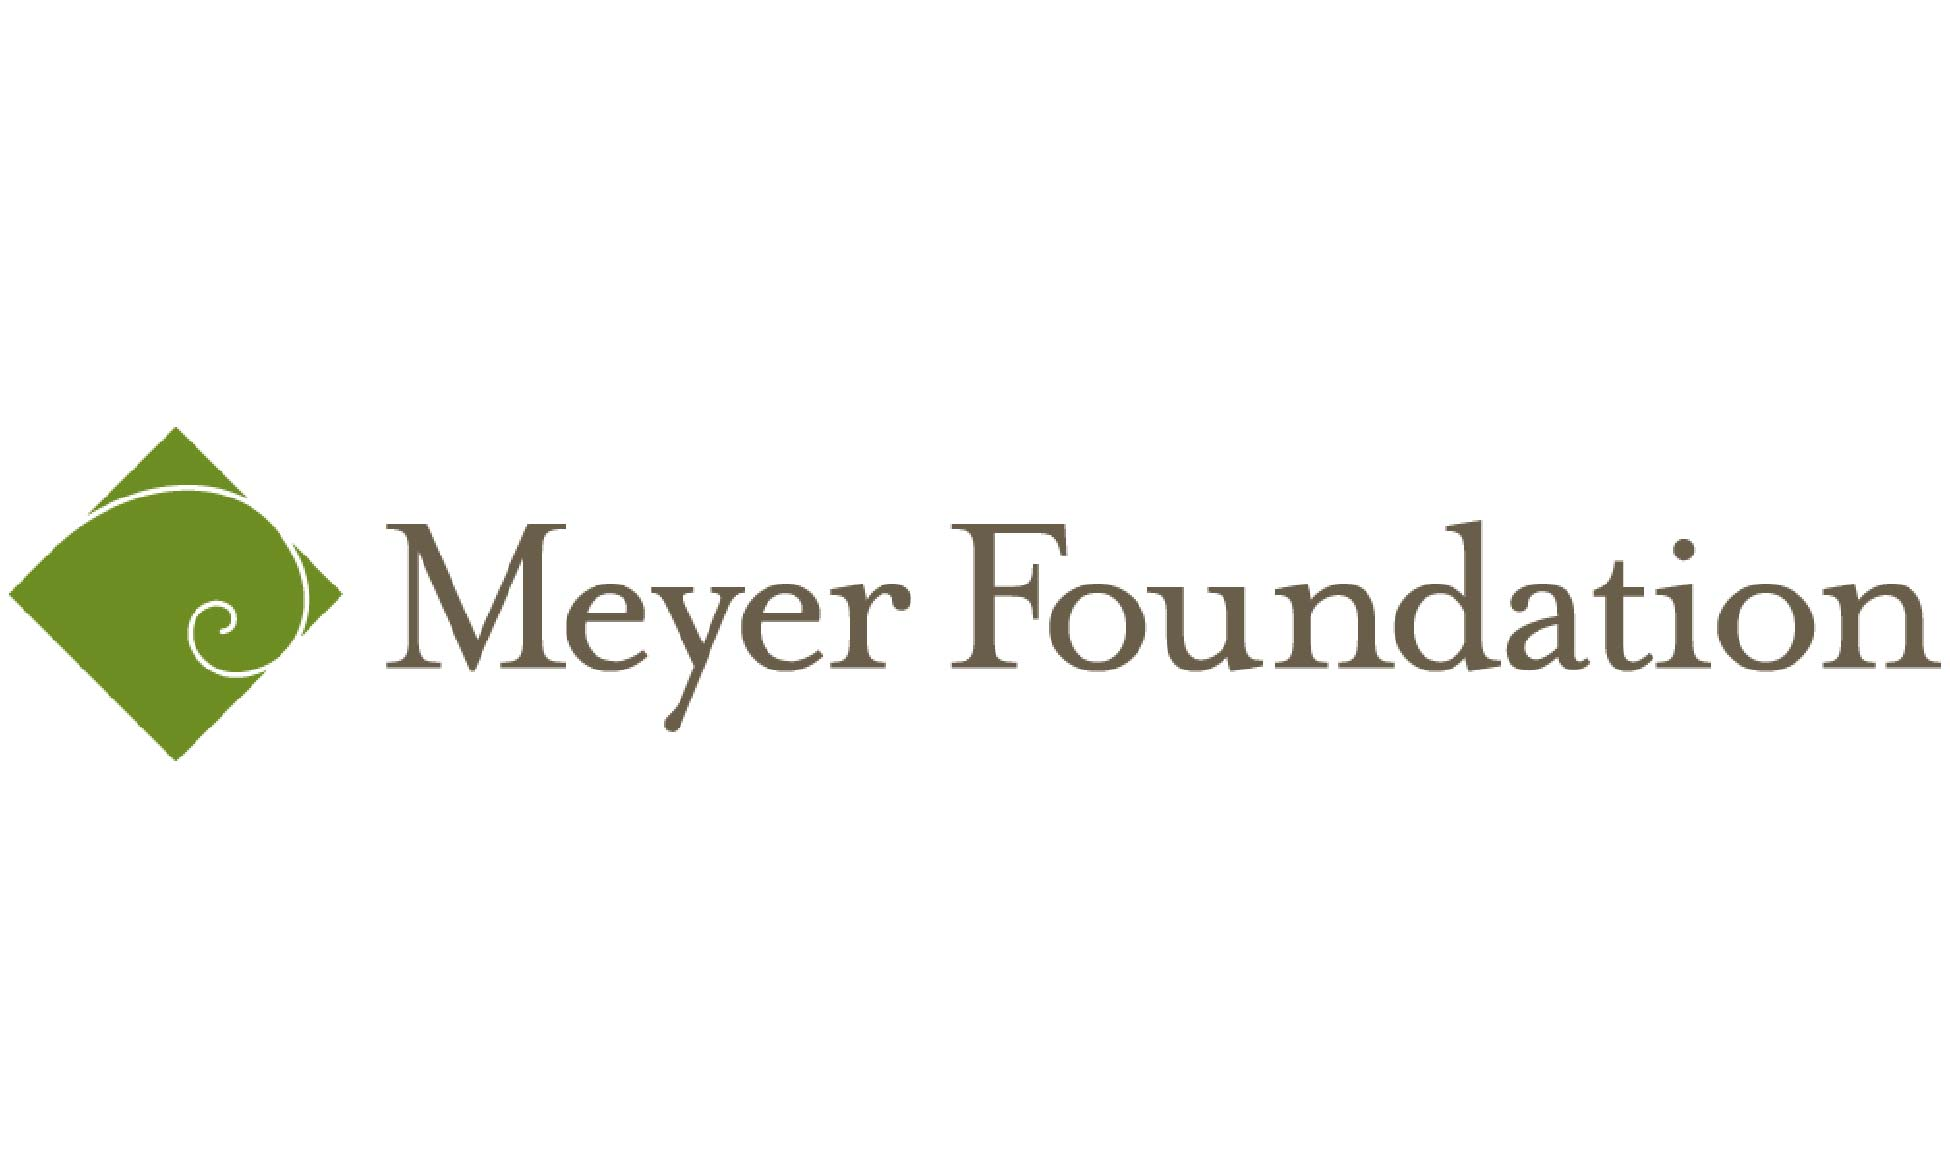 The   Meyer Foundation   engaged Sharp Insight to serve as a thought partner and facilitator in a collaborative process to refine their theory of change.